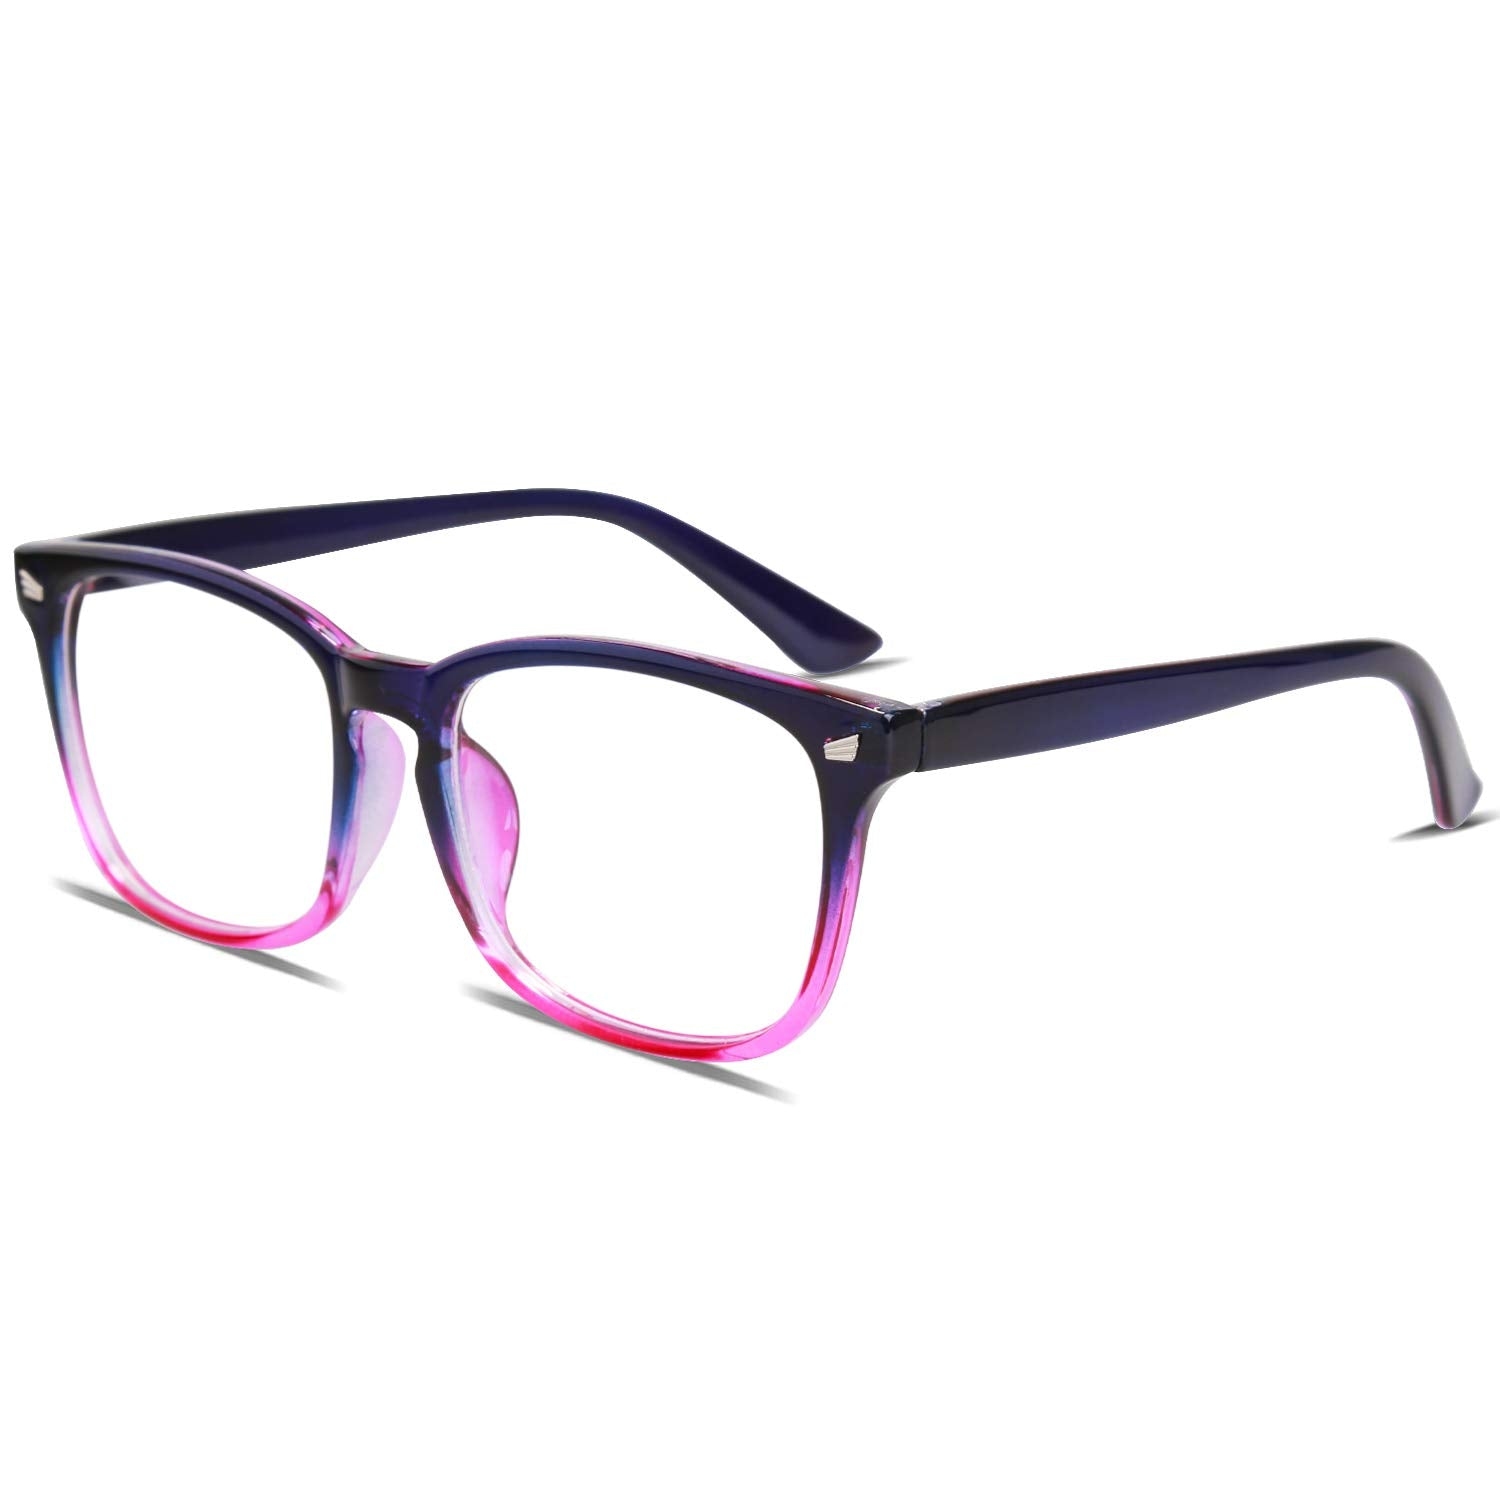 Blue Light Blocking Glasses for Computer Gaming Reading - Amy - Teddith Blue Light Glasses Computer Glasses Gaming Reading Glasses Anti Glare Reduce Eye Strain Screen Glasses